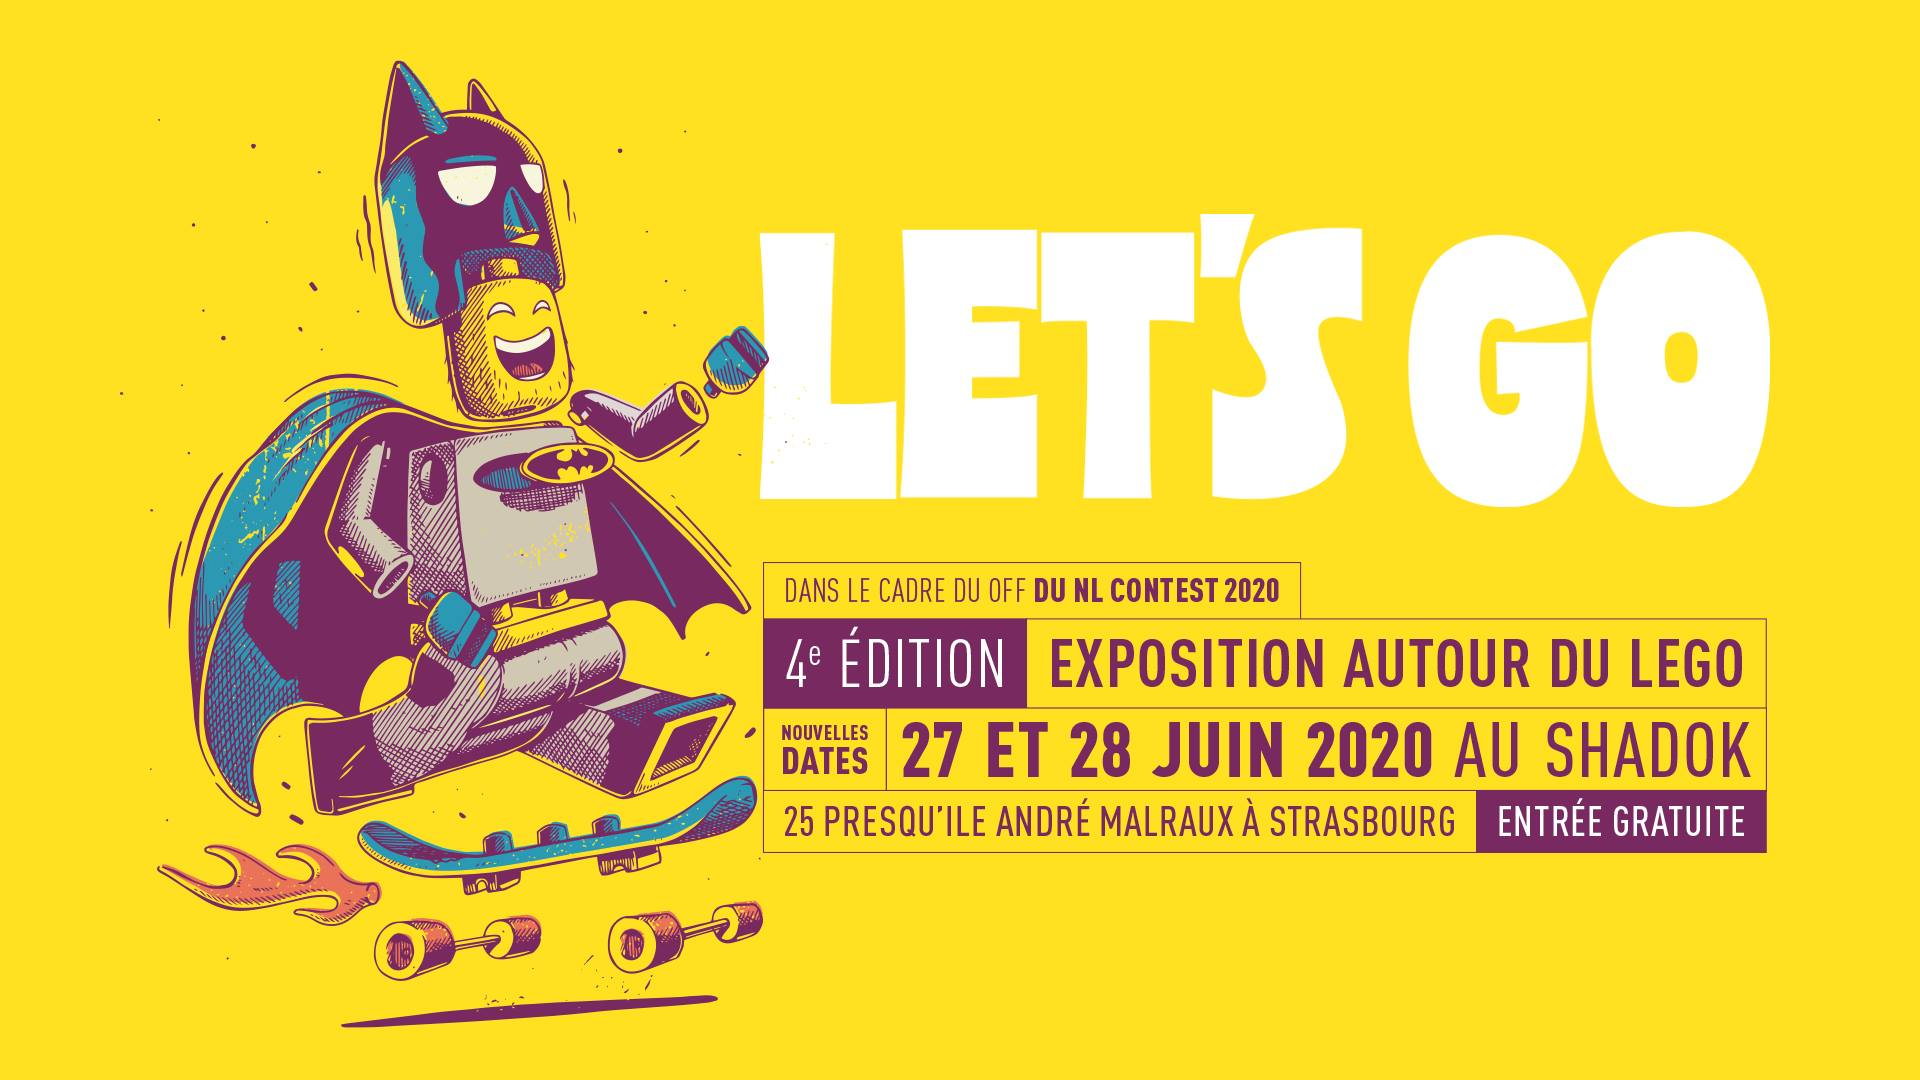 Expo Lego Let's Go - NL Contest - 2020 - Supacat, the Street Art Cat